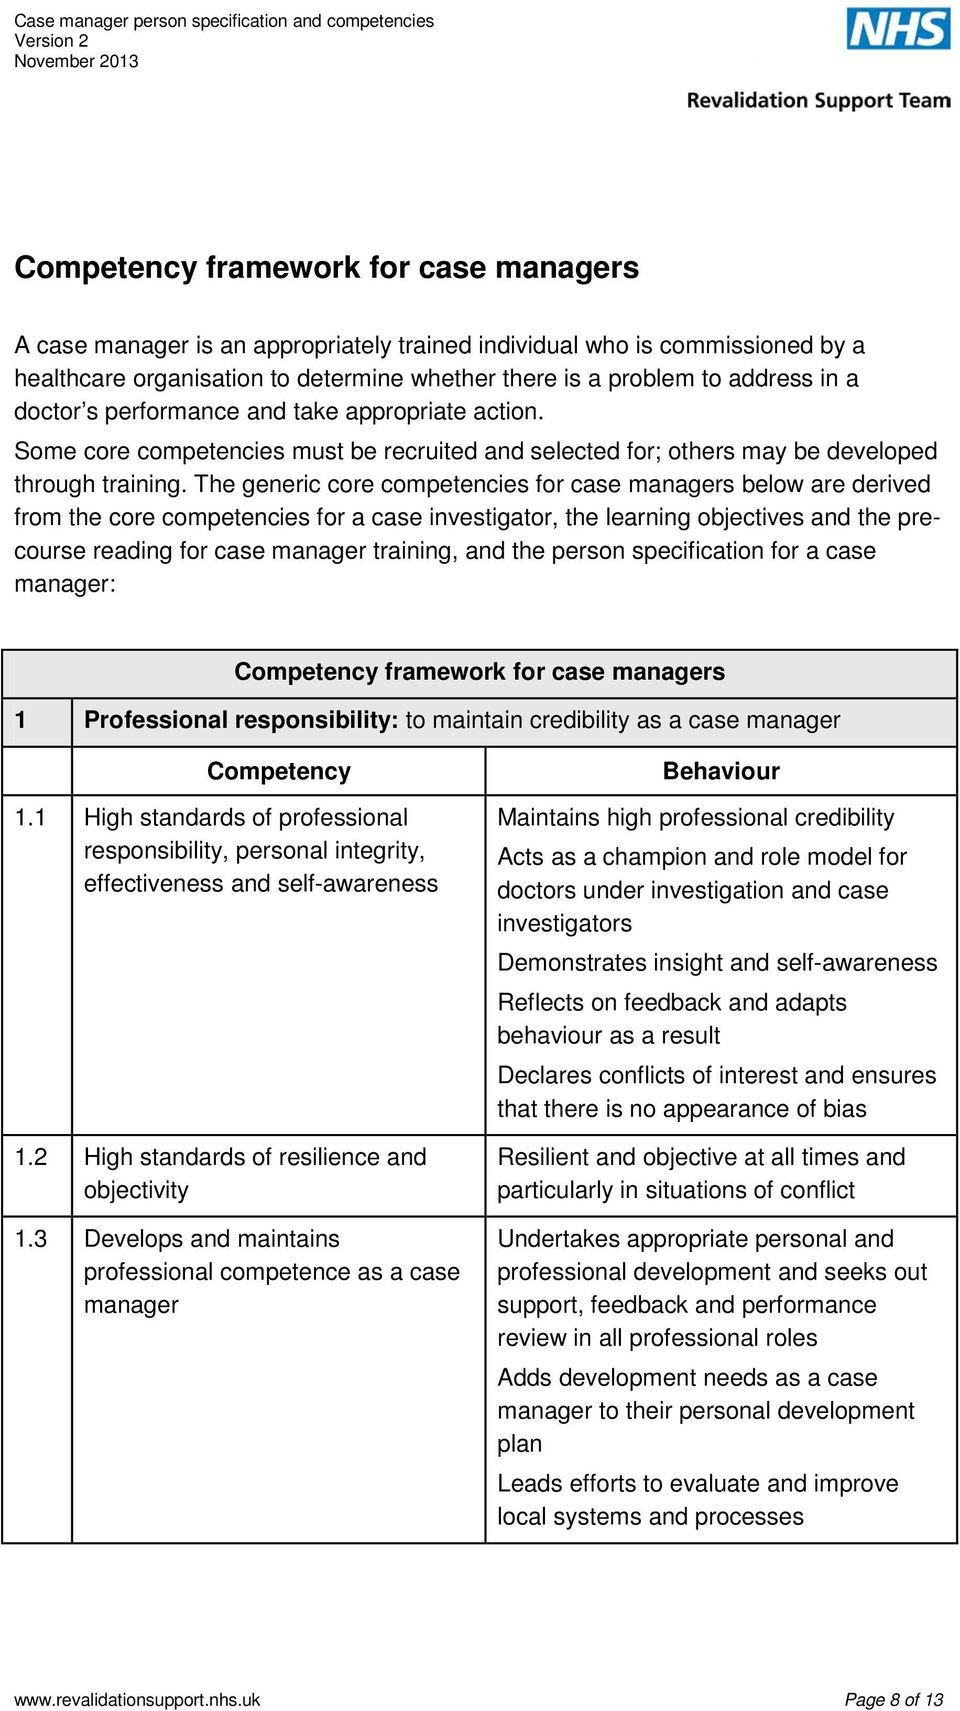 The Generic Core Competencies For Case Managers Below Are Derived From A